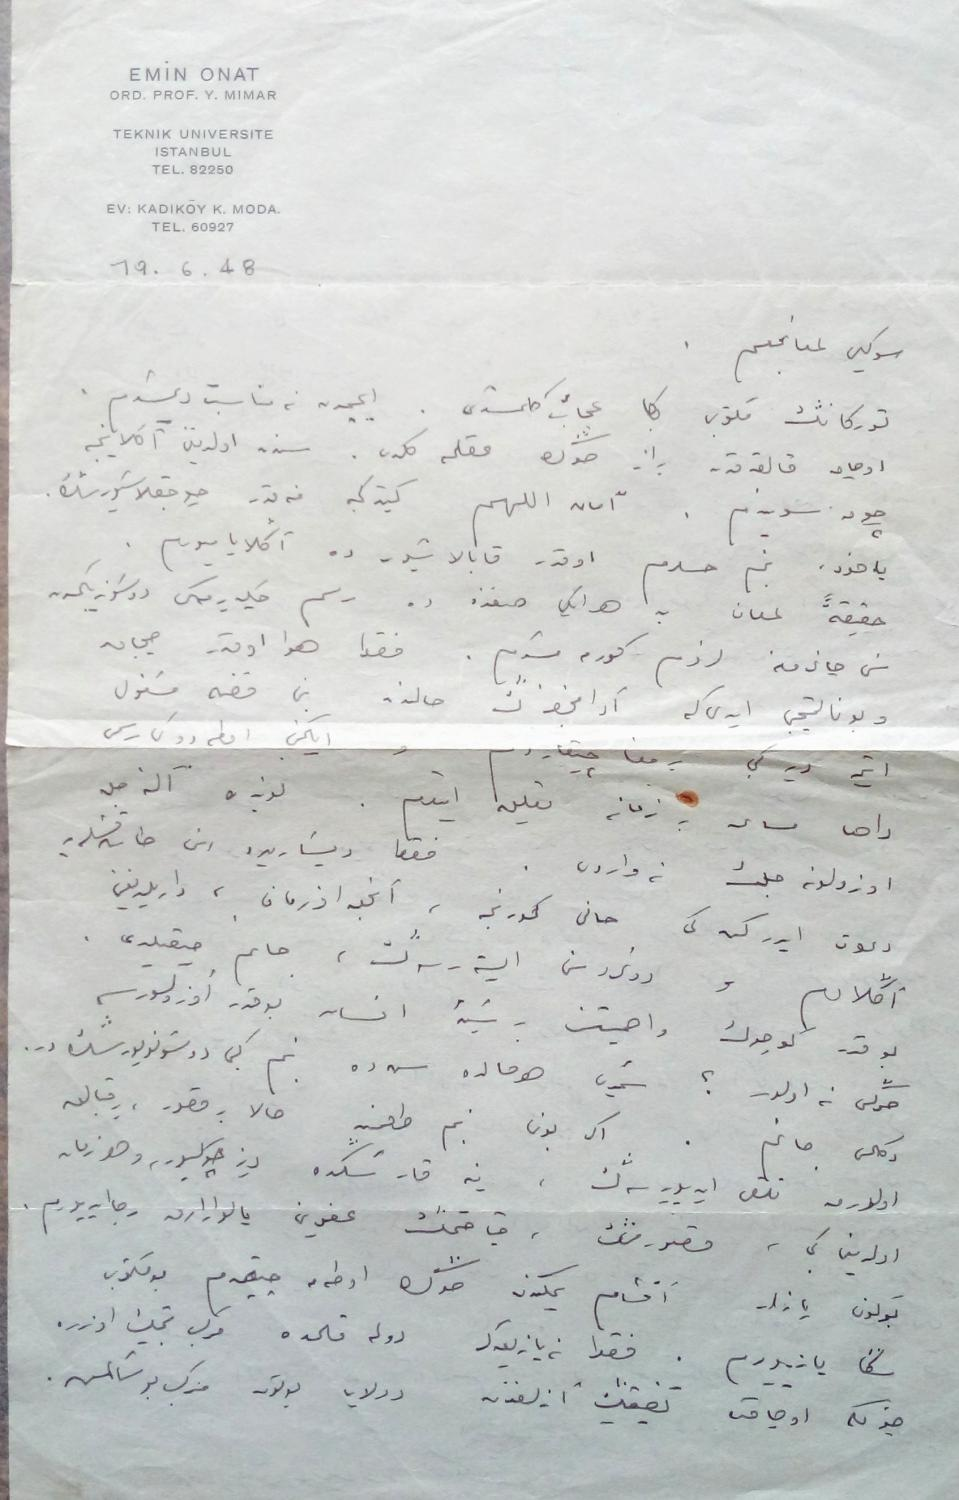 MODERN TURKISH ARCHITECTURE] [Autograph letter signed Emin Onat]  by